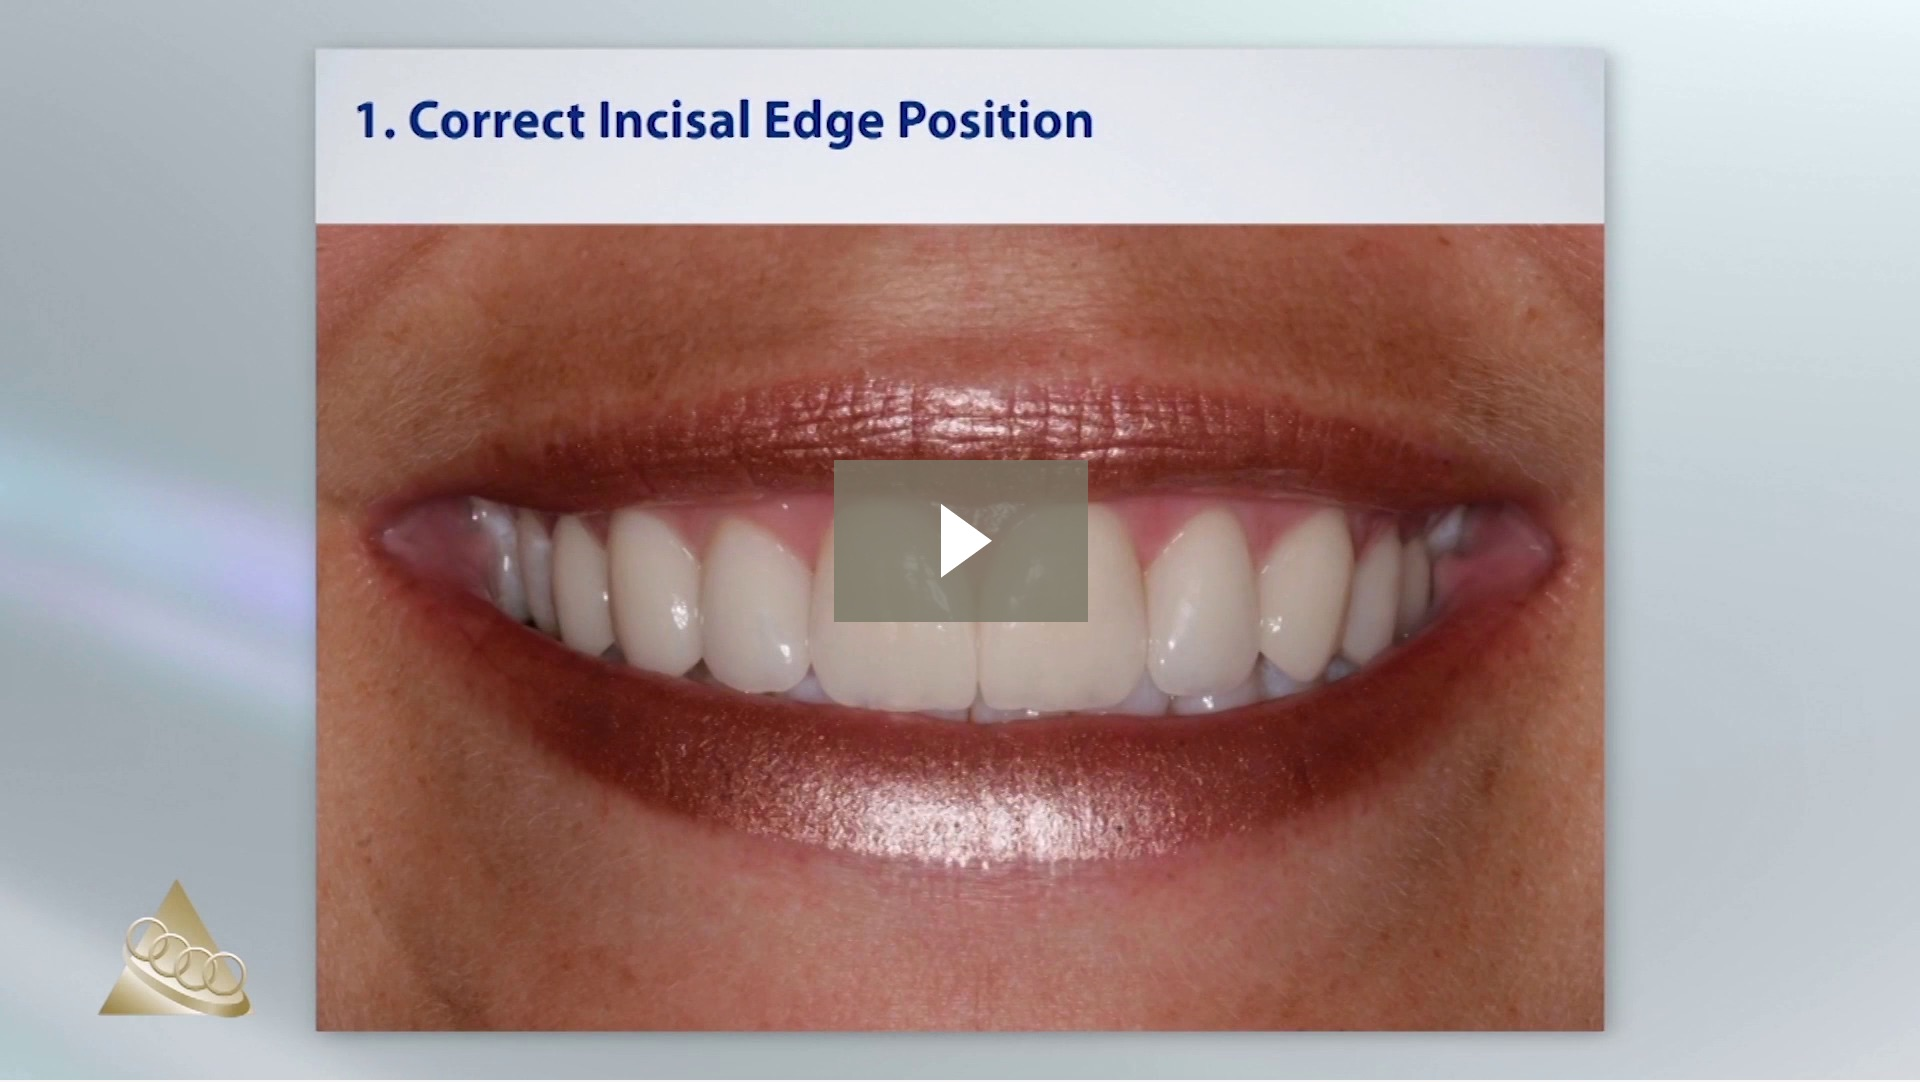 Correct Incisal Edge Position